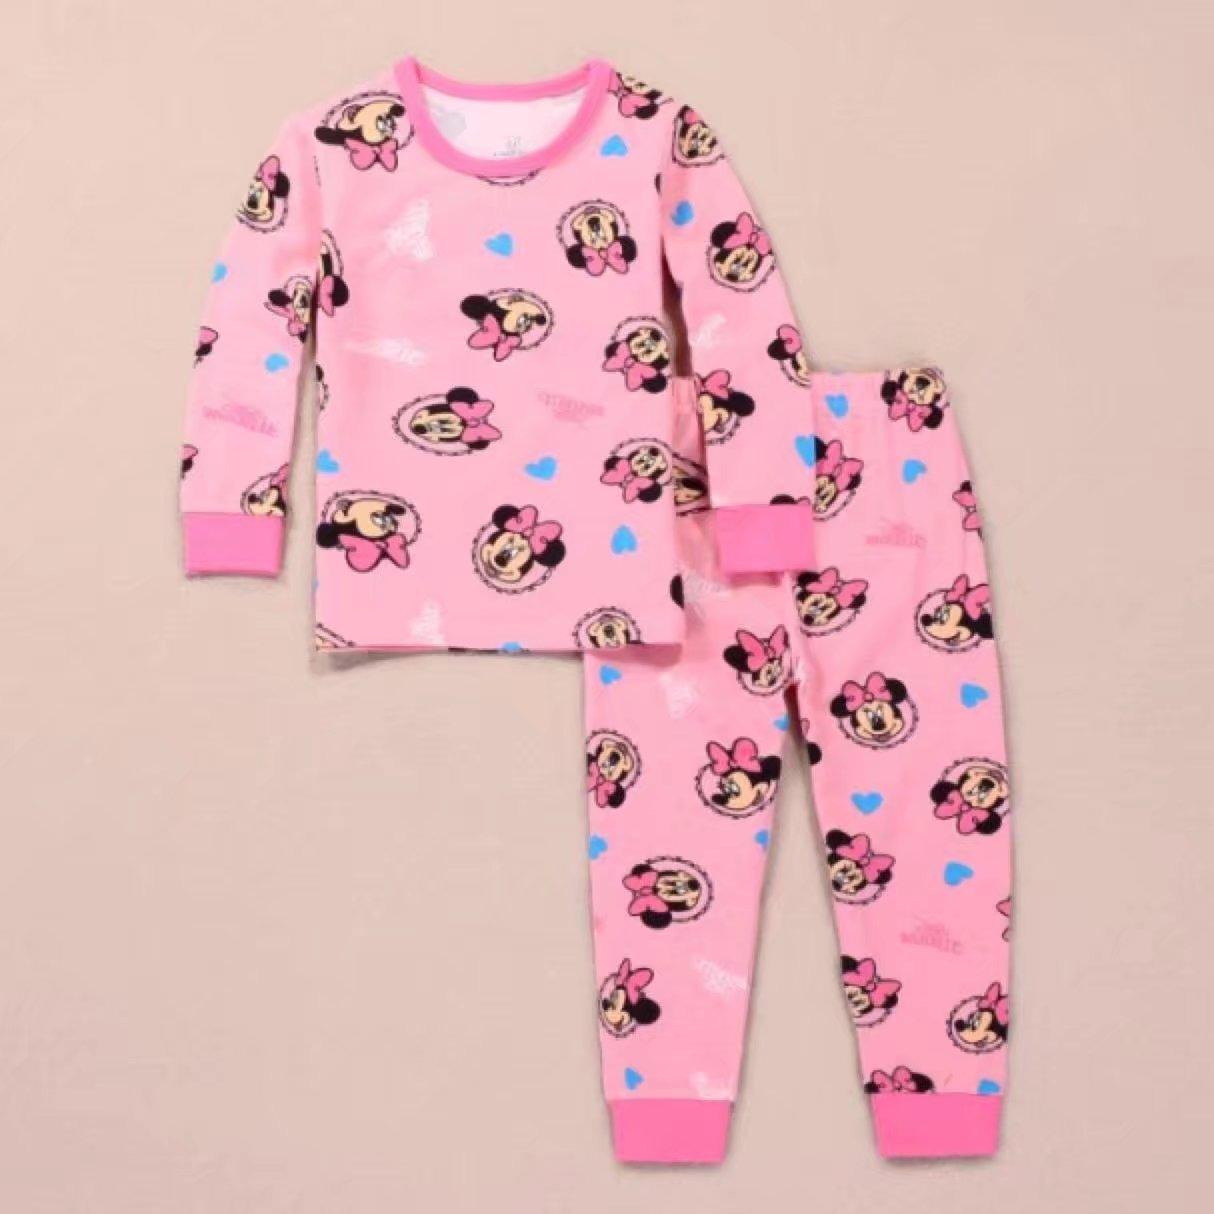 Best Reviews Of Kids Clothes Minnie Mouse Pajamas Frozen Pajamas Unicorn Pajamas Peppa Pig Pajamas